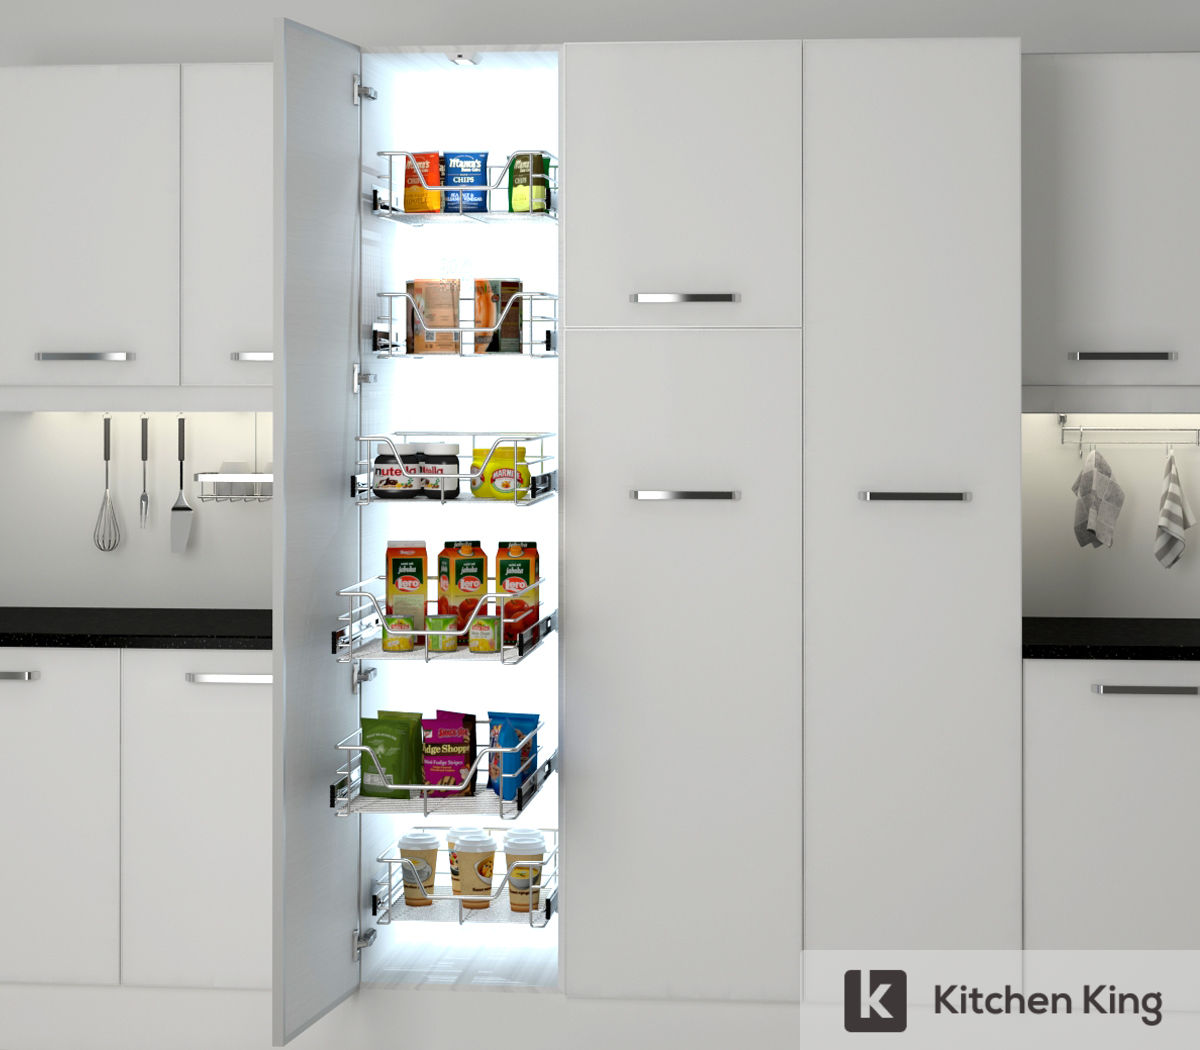 Kitchen Accessory: Kitchen Accessories, Kitchen Cabinet Pull Out In Dubai